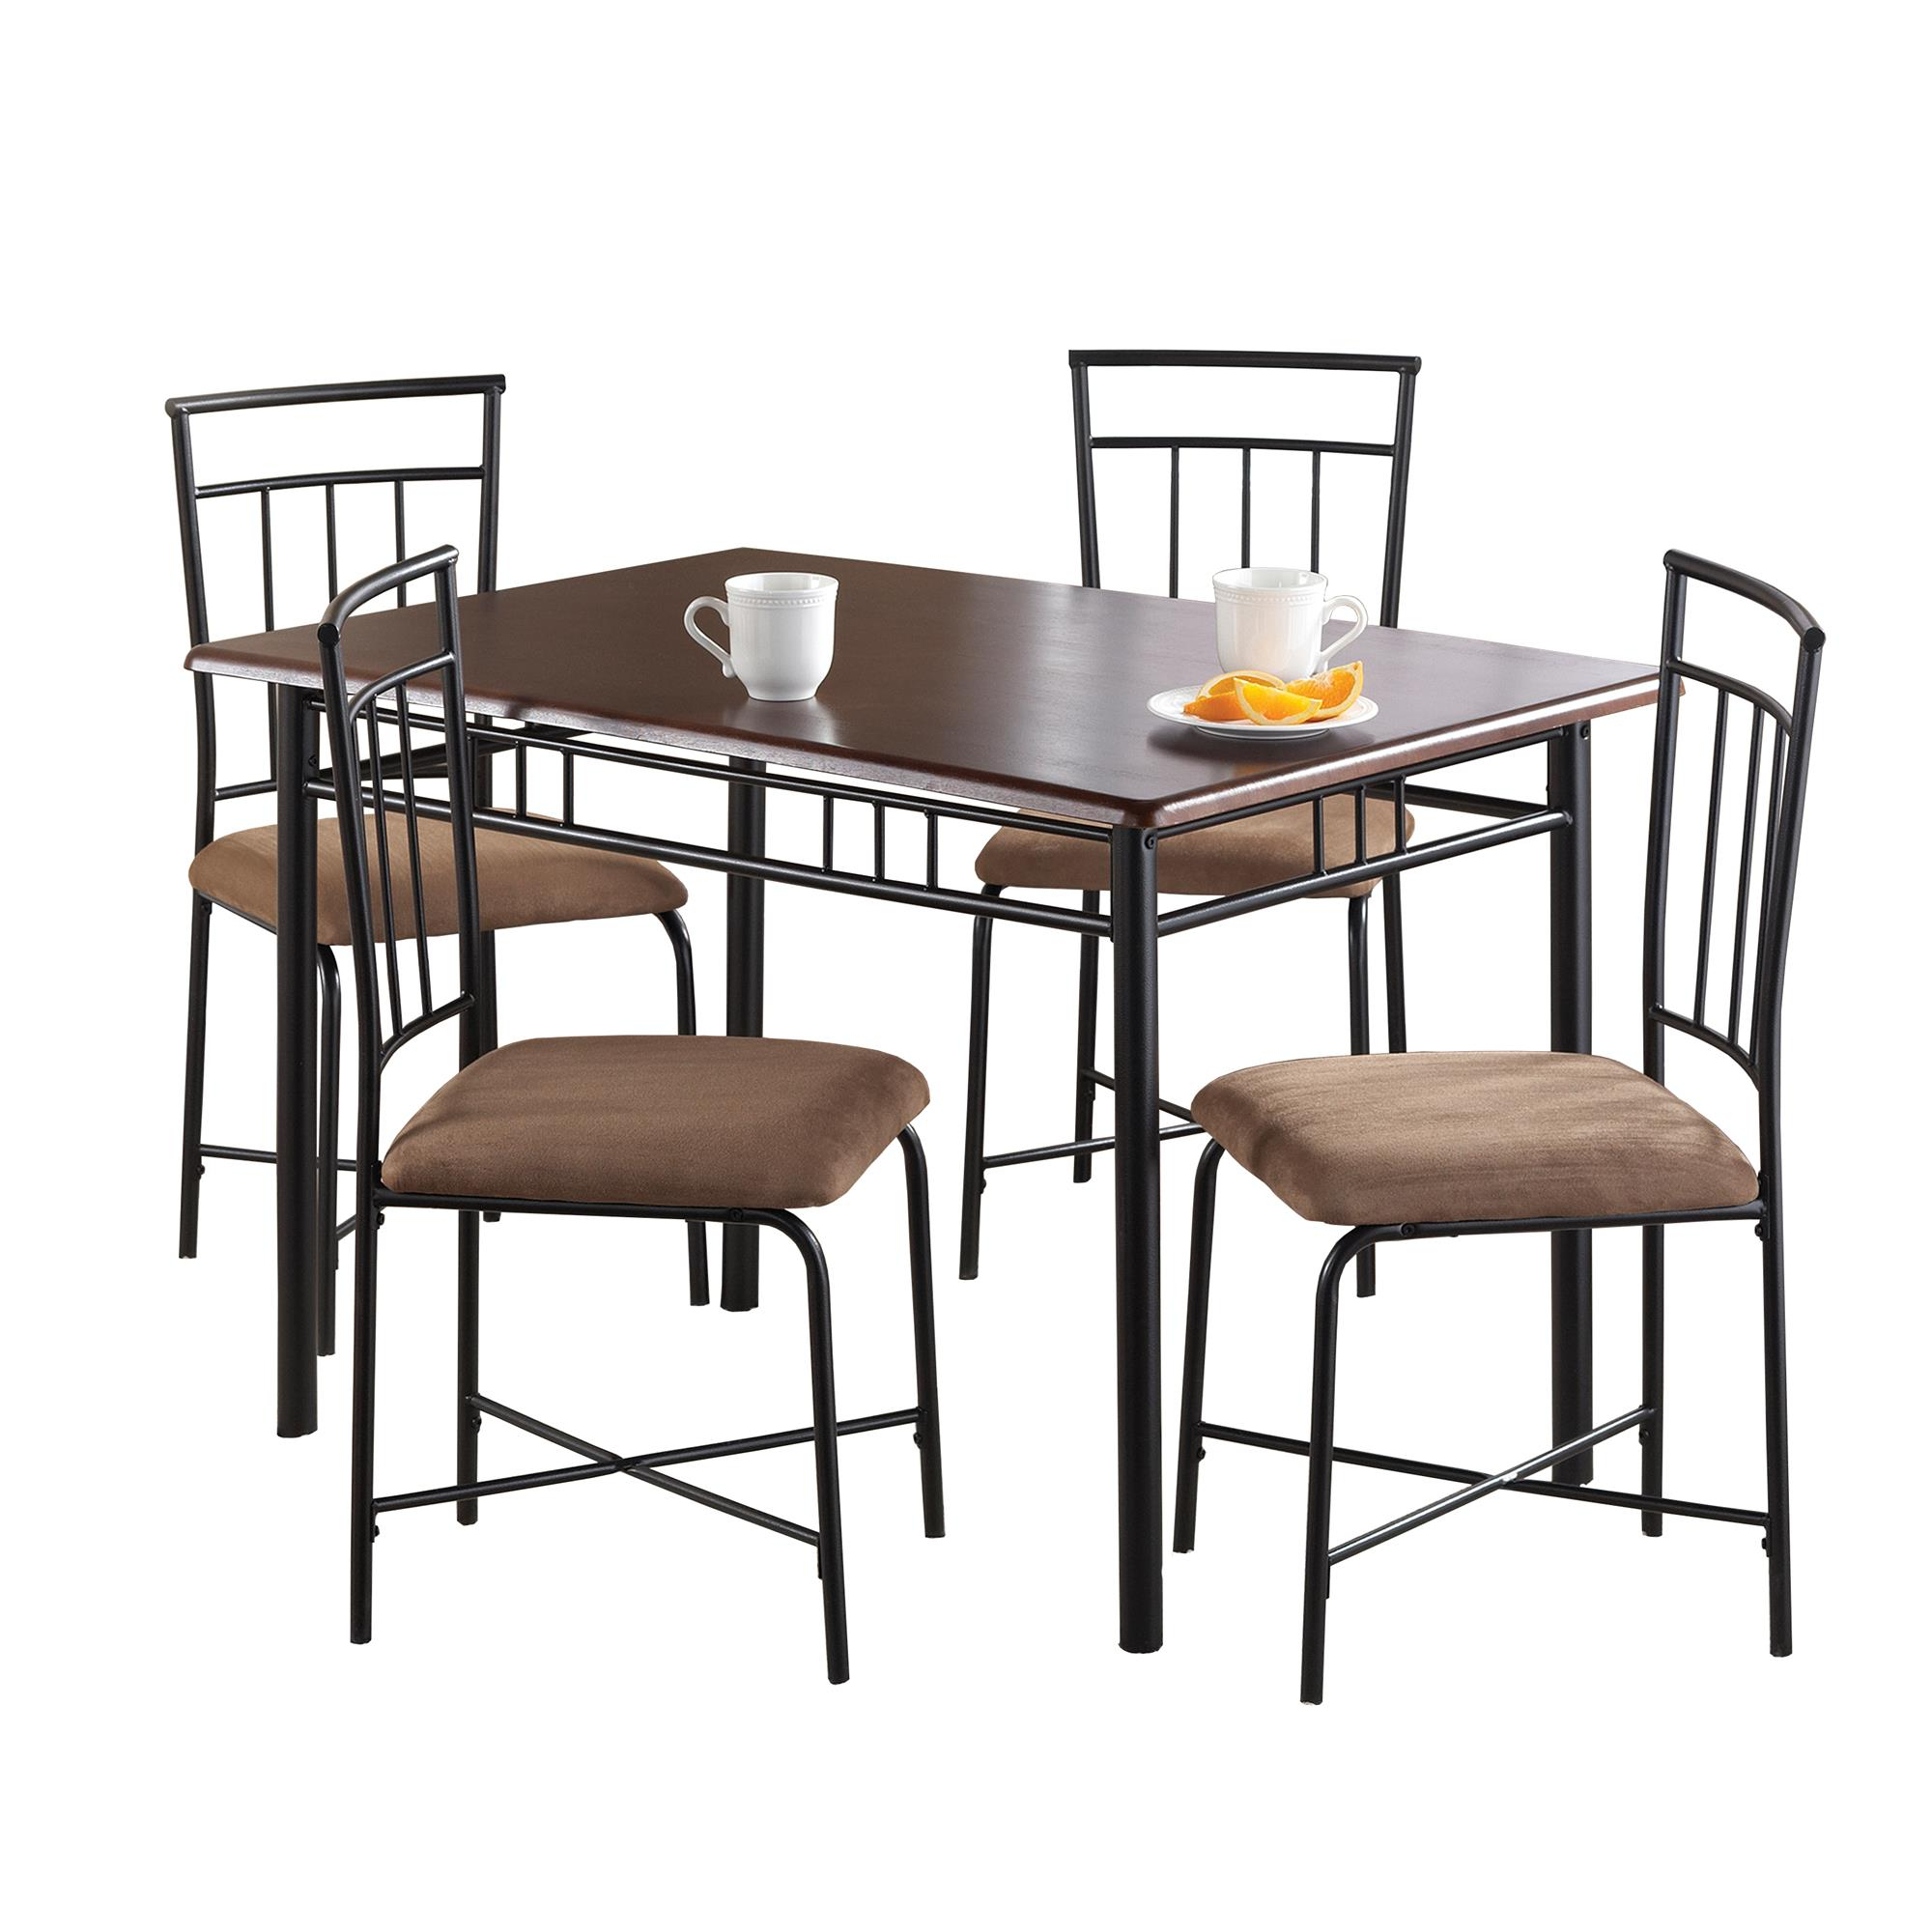 Most Current West Hill Family Table 3 Piece Dining Sets With Regard To Mainstays 5 Piece Dining Set, Multiple Colors (View 19 of 20)